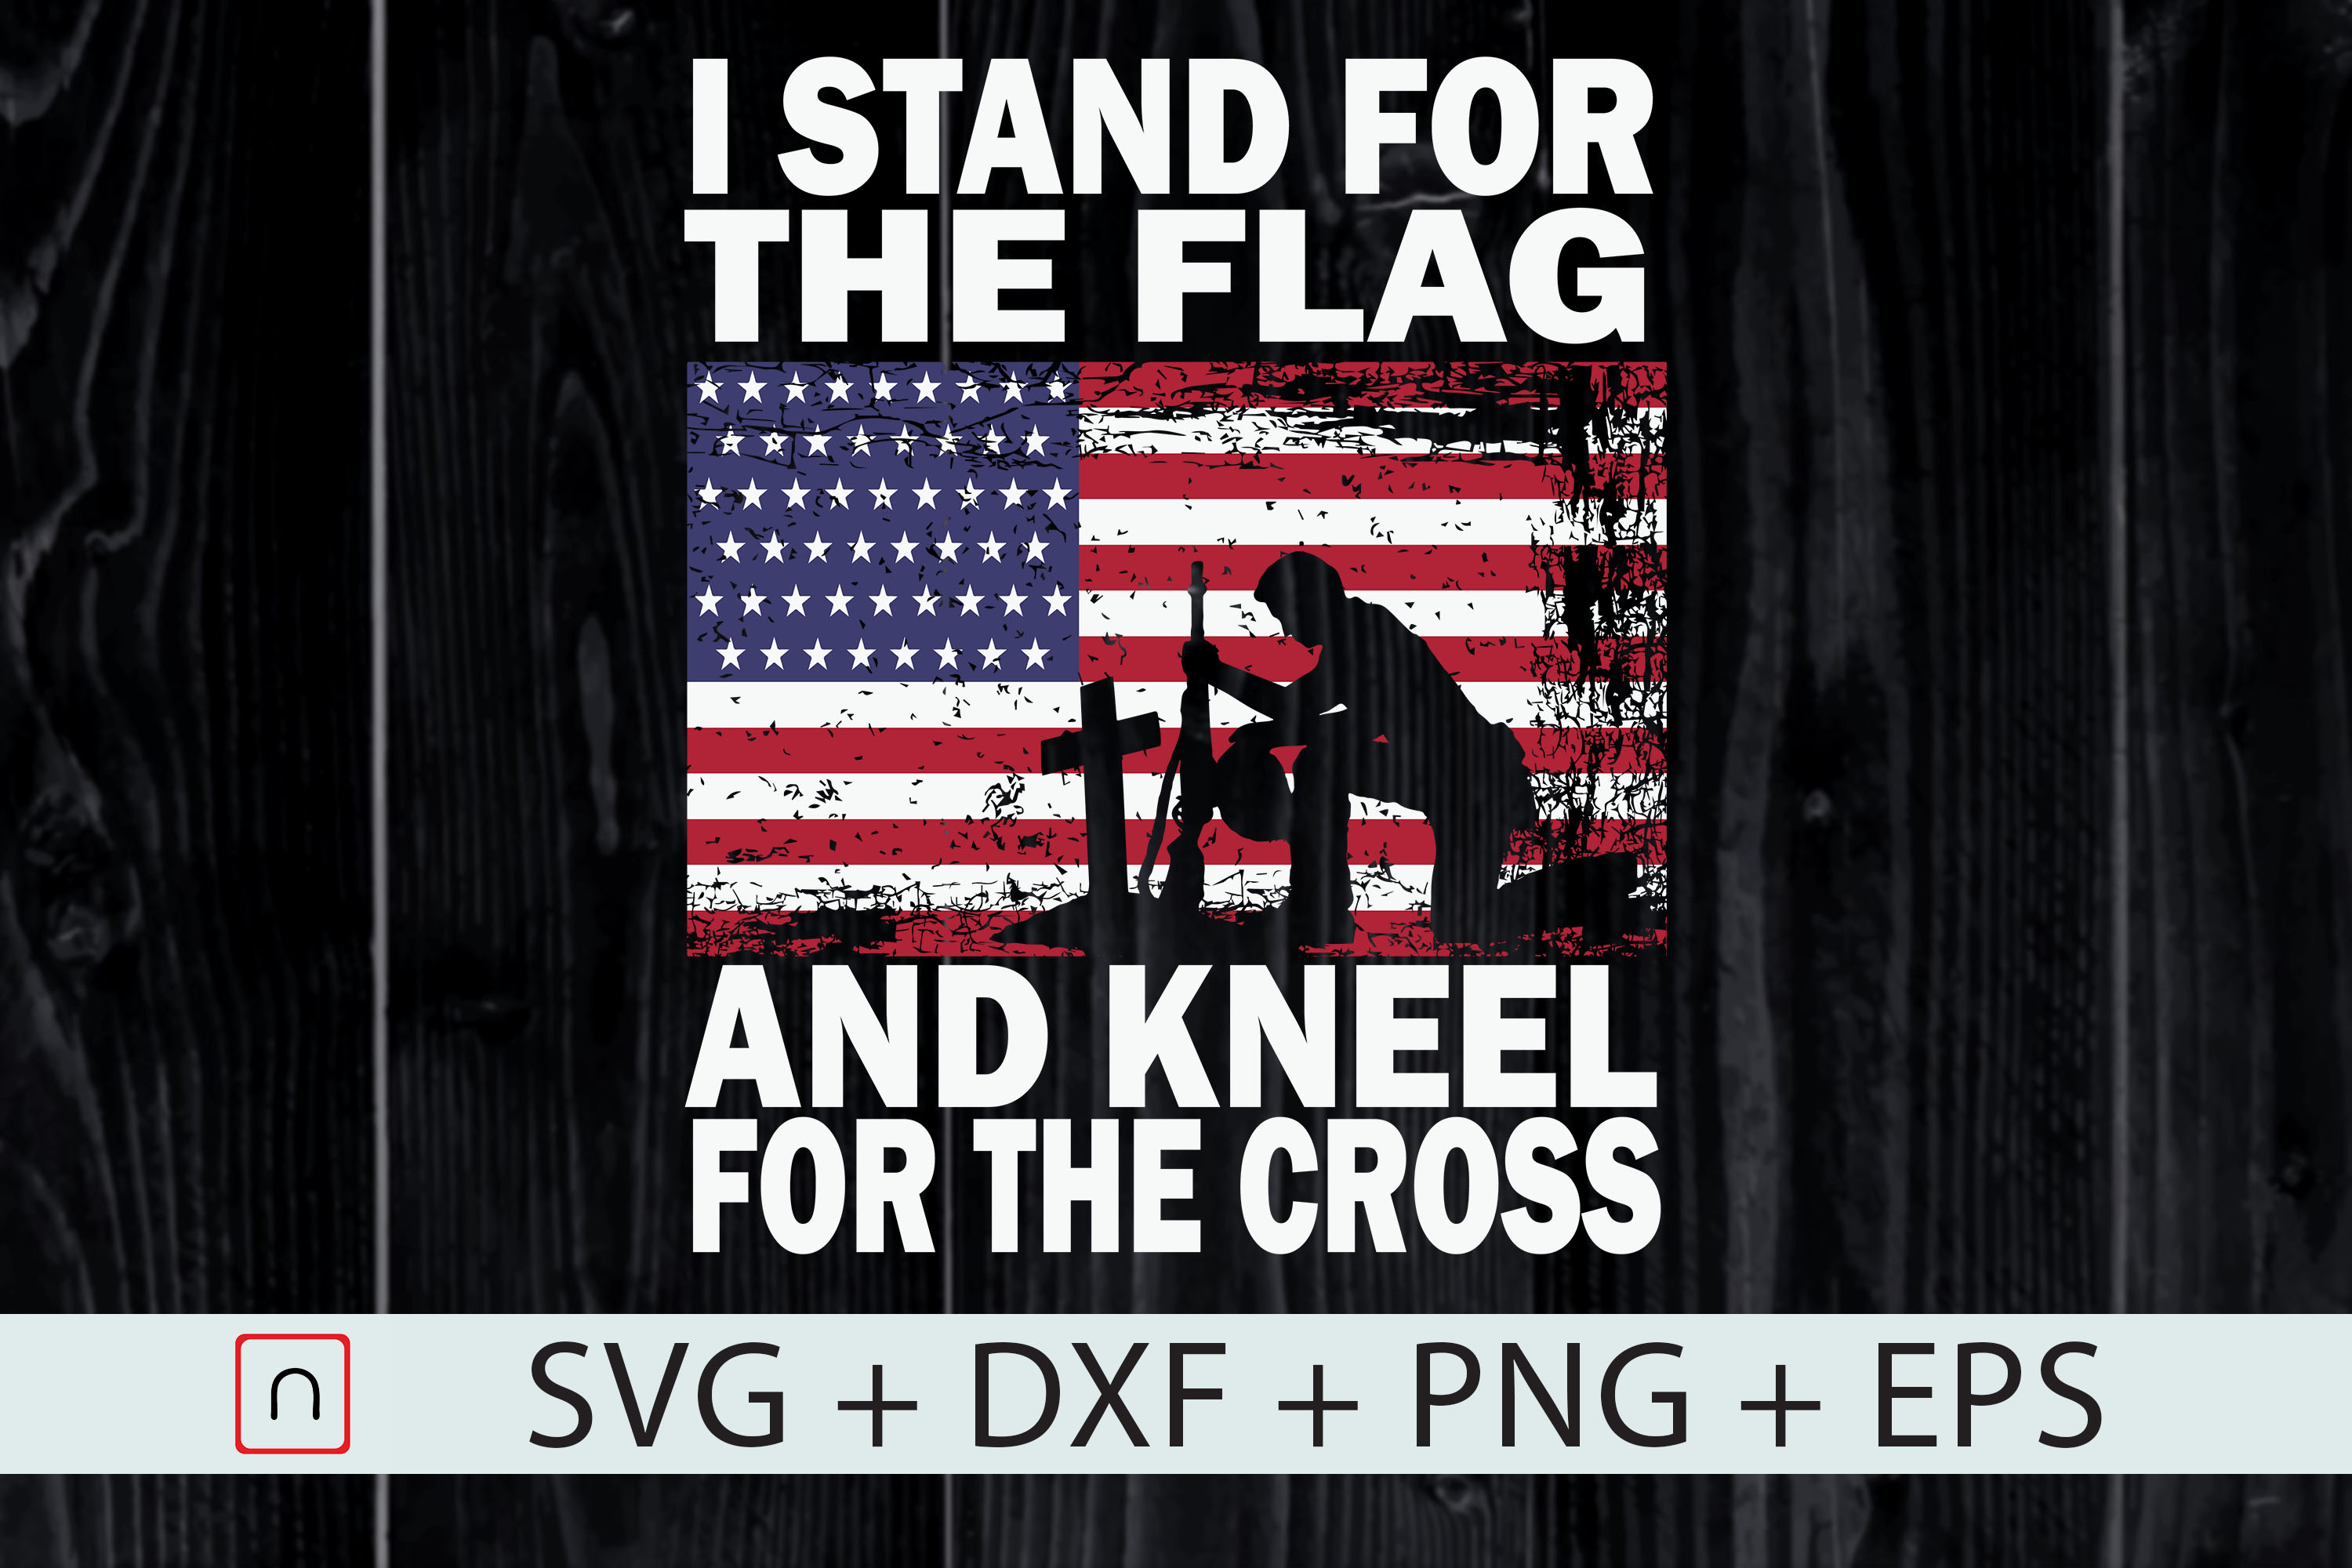 Download Free I Stand For The Flag Kneel For The Cross Graphic By Novalia for Cricut Explore, Silhouette and other cutting machines.